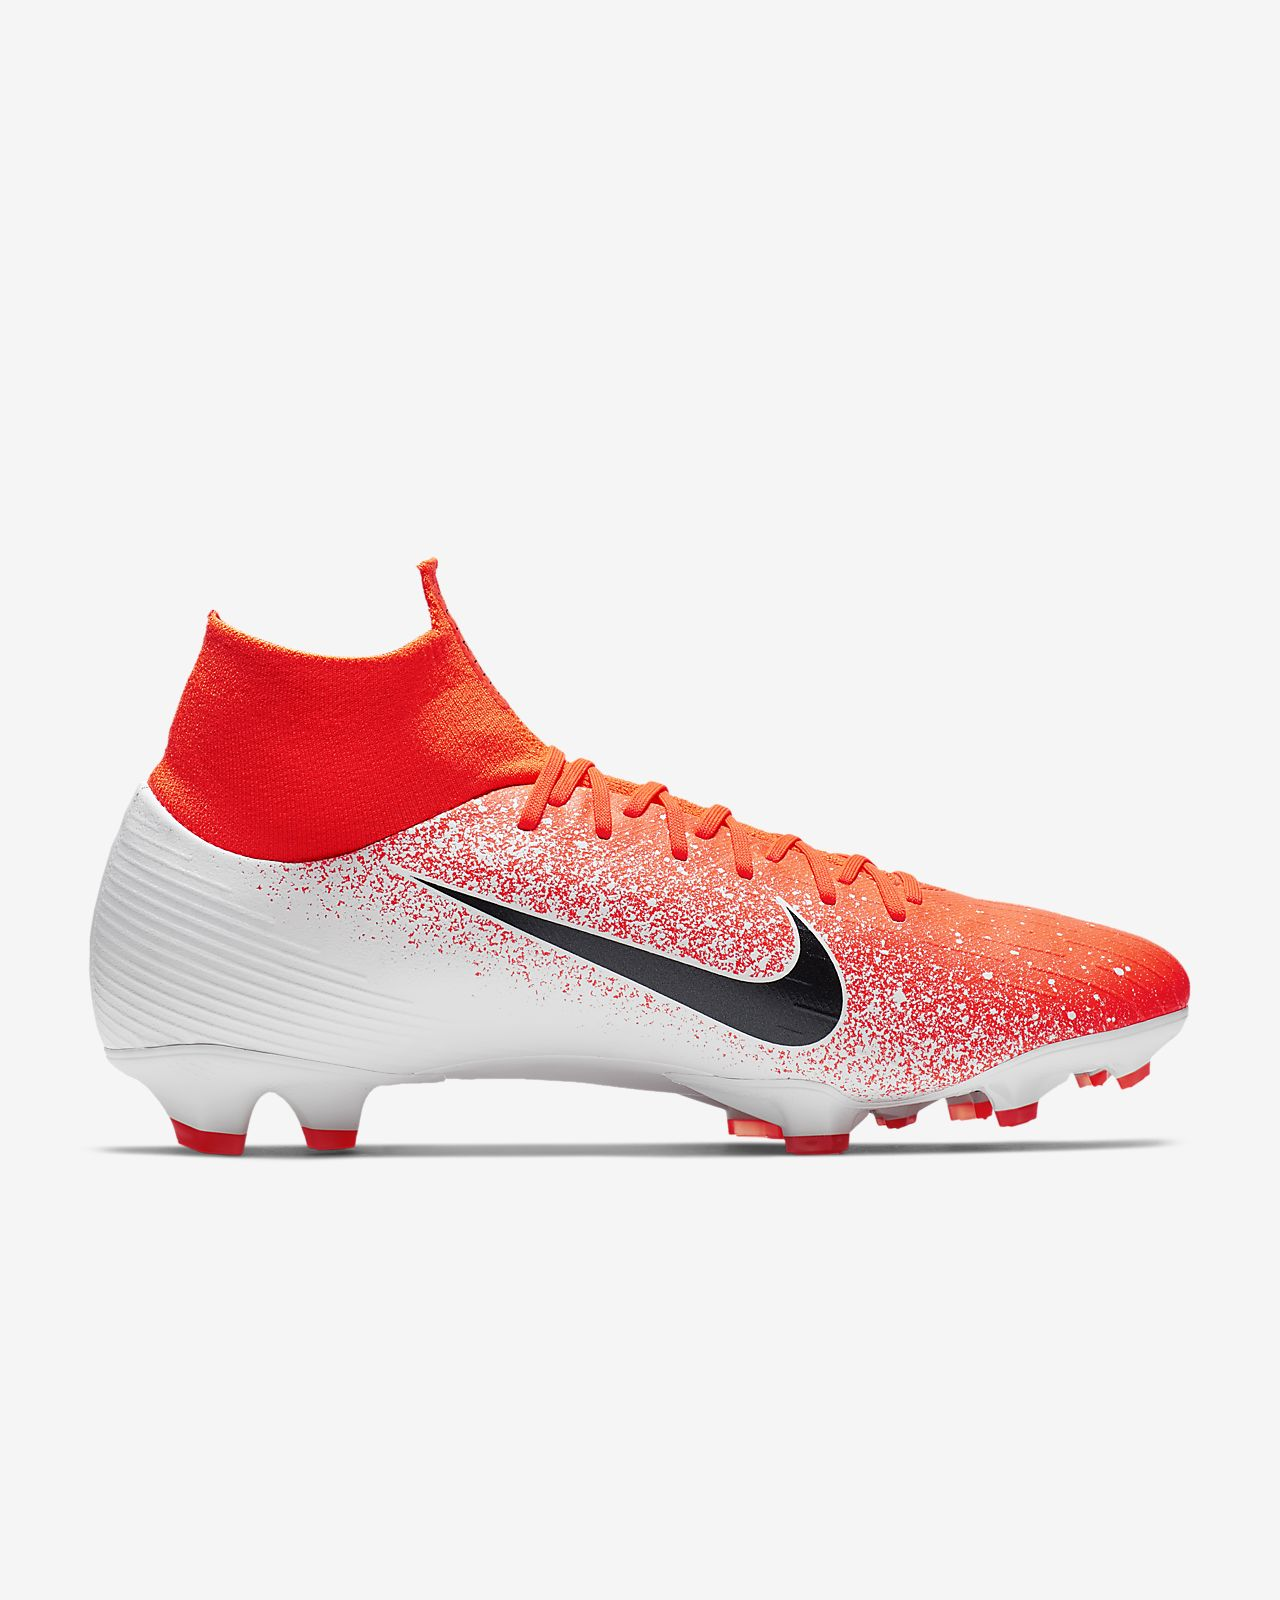 4a69856c6dd1 Nike Superfly 6 Pro FG Firm-Ground Soccer Cleat . Nike.com